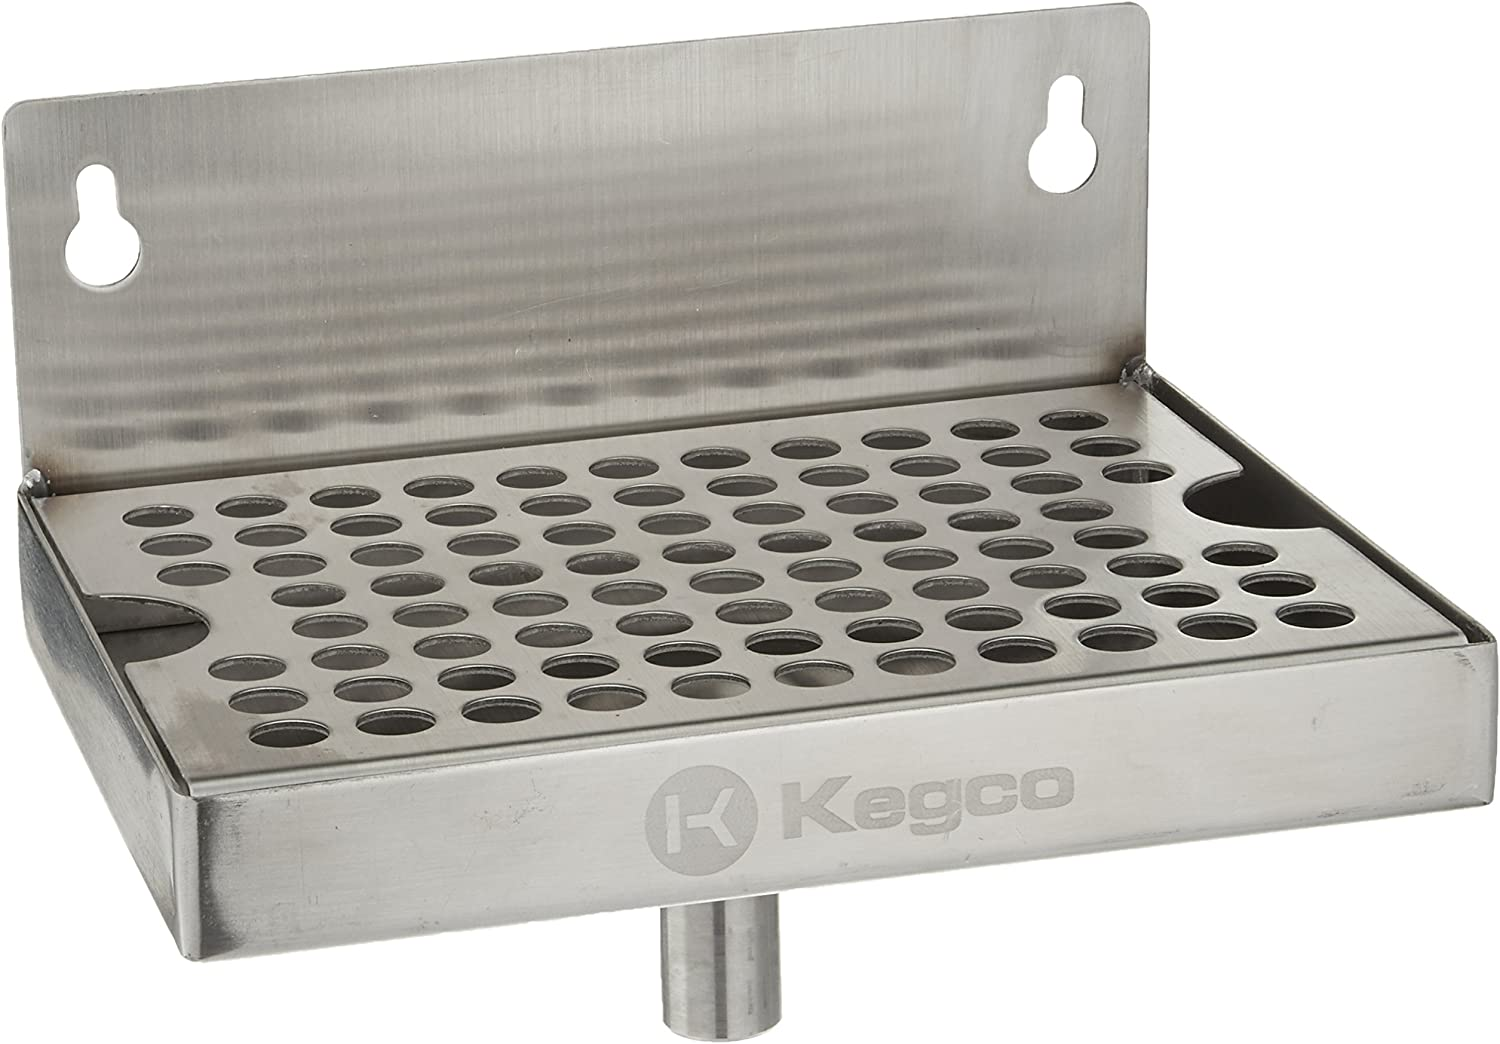 "Kegco KC DP-64-D Drip Tray, 6"", Stainless Steel"